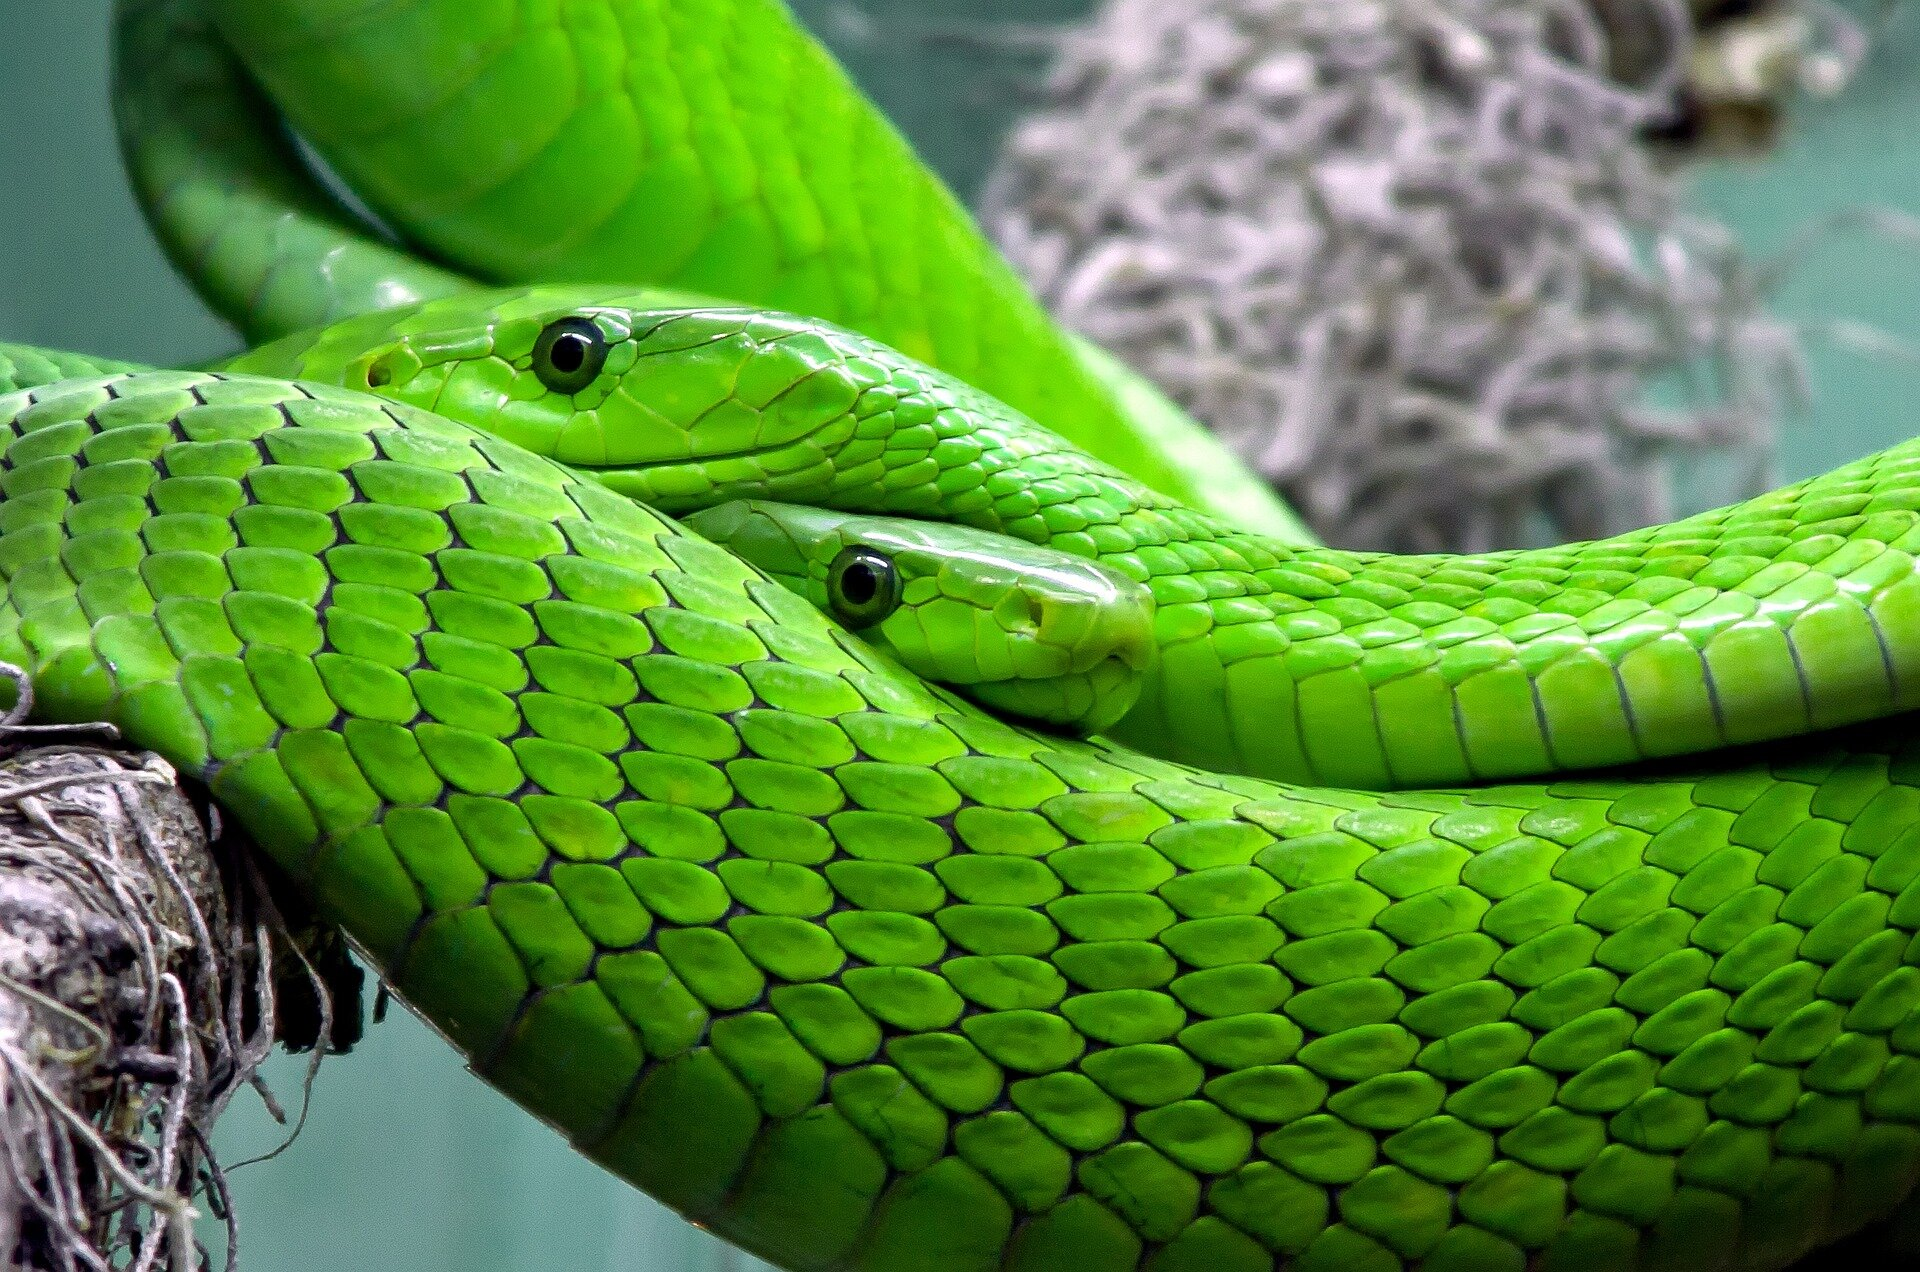 Snake species from different terrains surrender surface secrets behind slithering success